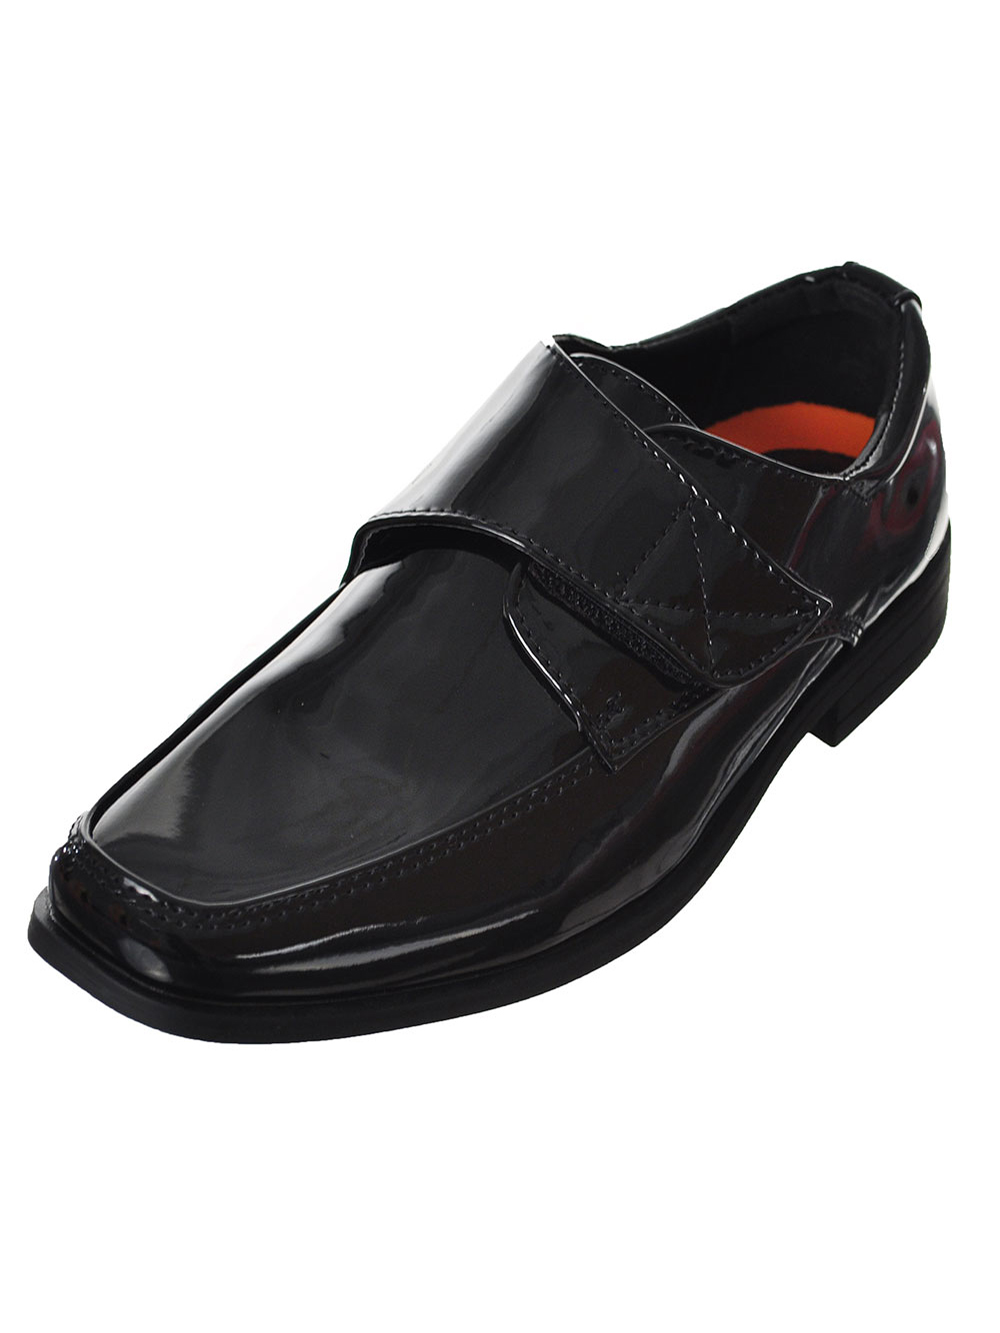 Jodano Collection Boys' Dress Shoes